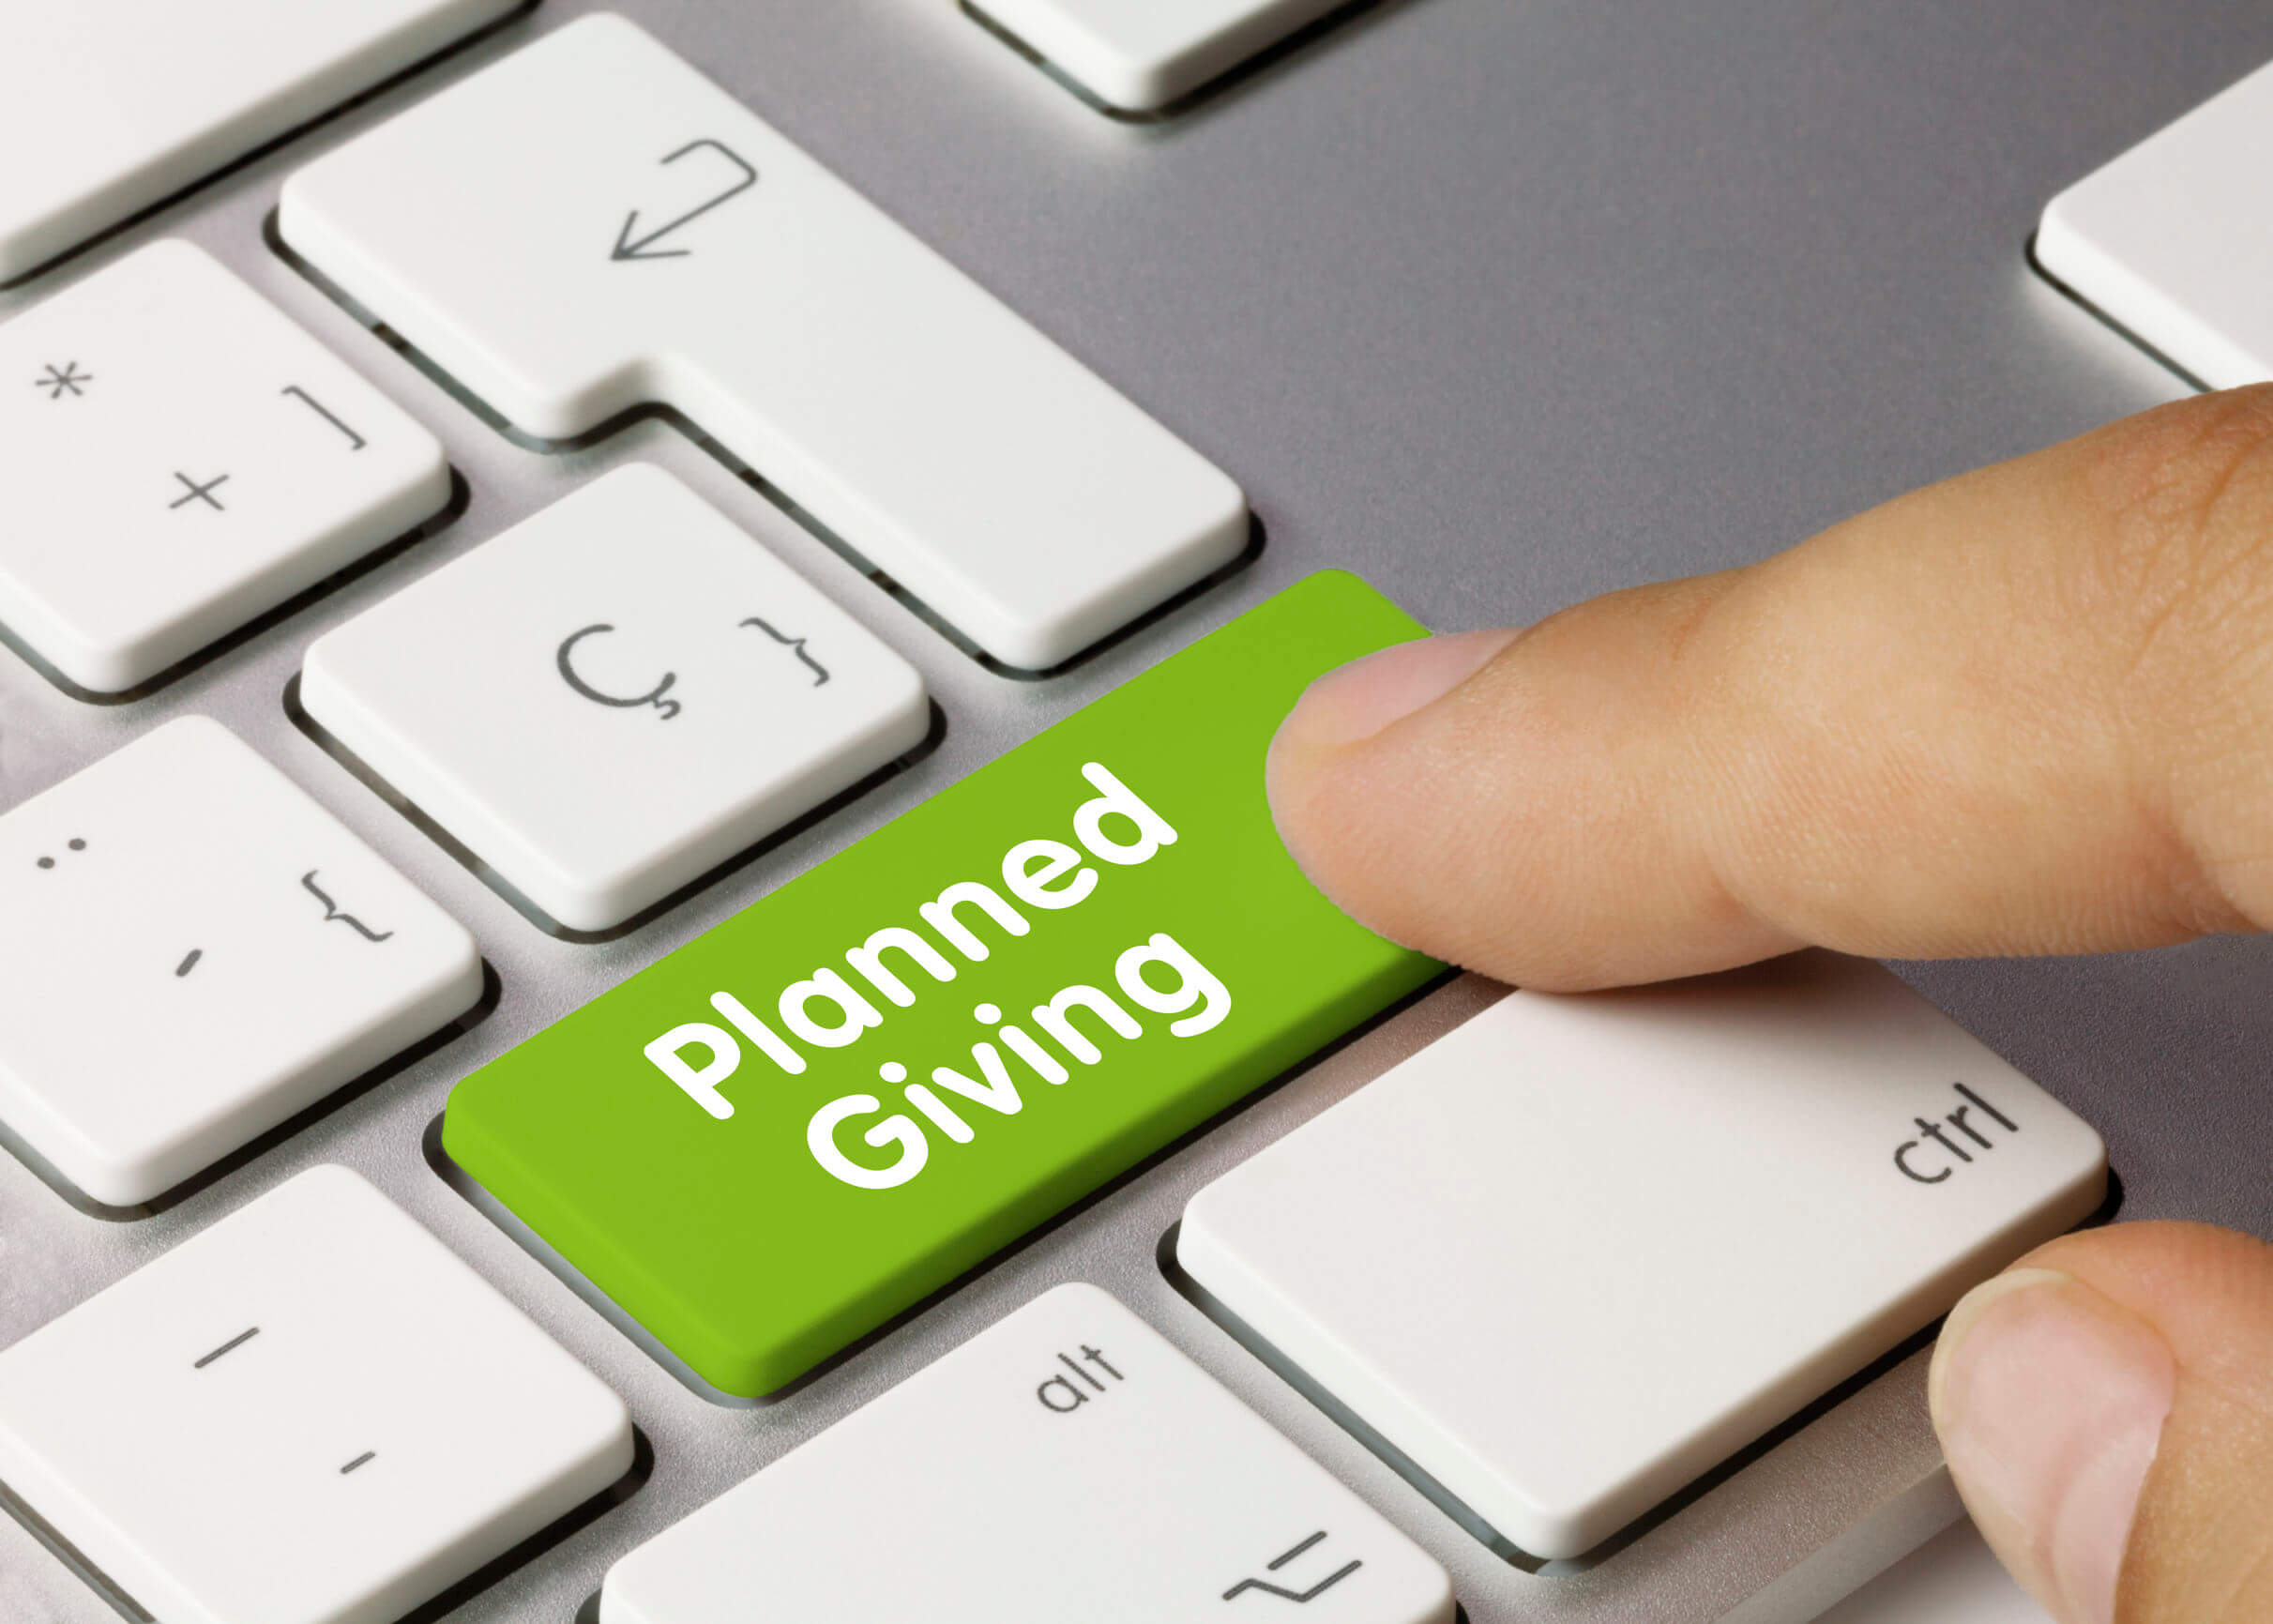 """Image of a computer keyboard with a """"planned giving"""" button, representing how estate planning and charitable giving attorney Anna M. Price helps clients with planning charitable giving in the context of overall estate planning."""